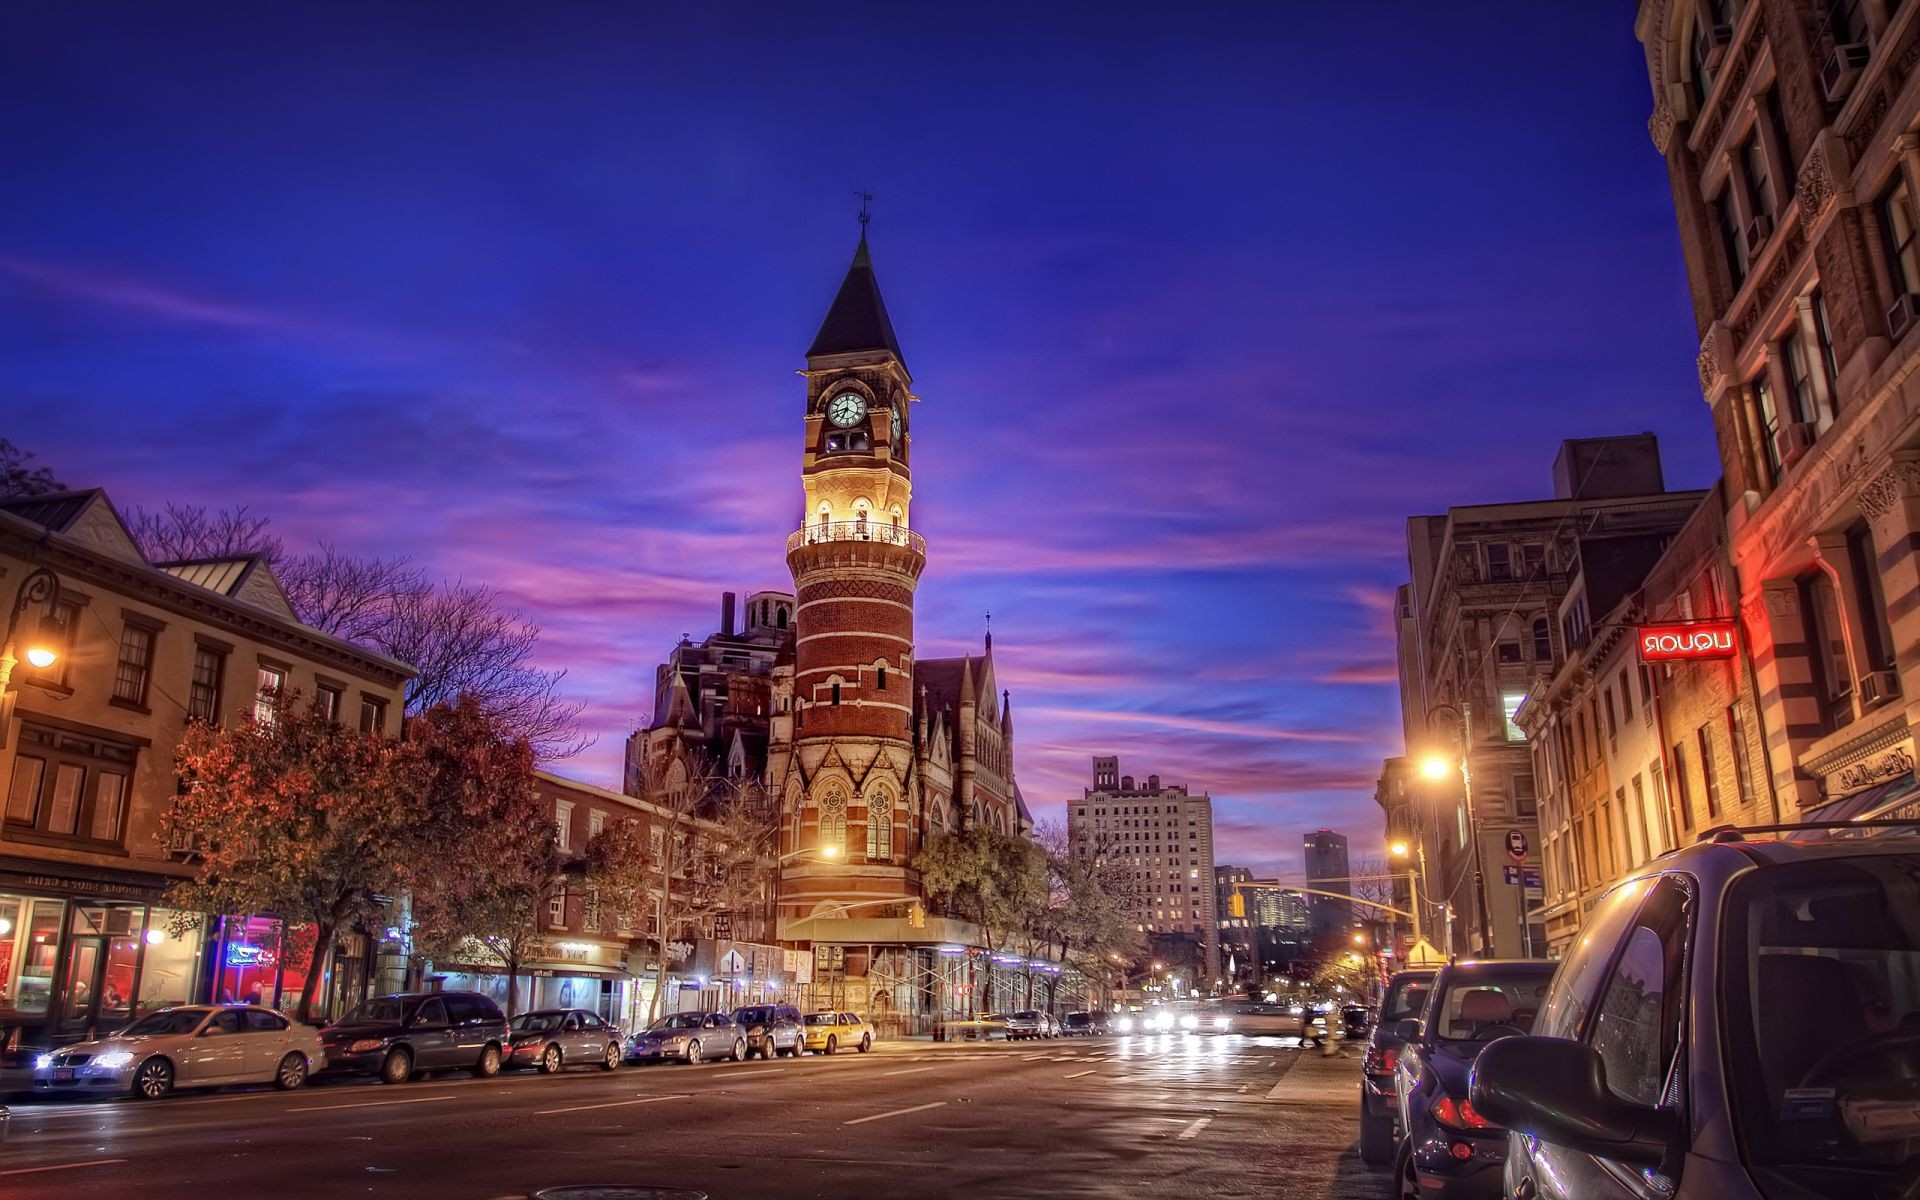 village nyc jefferson market 6th ave and 9th st. usa ne